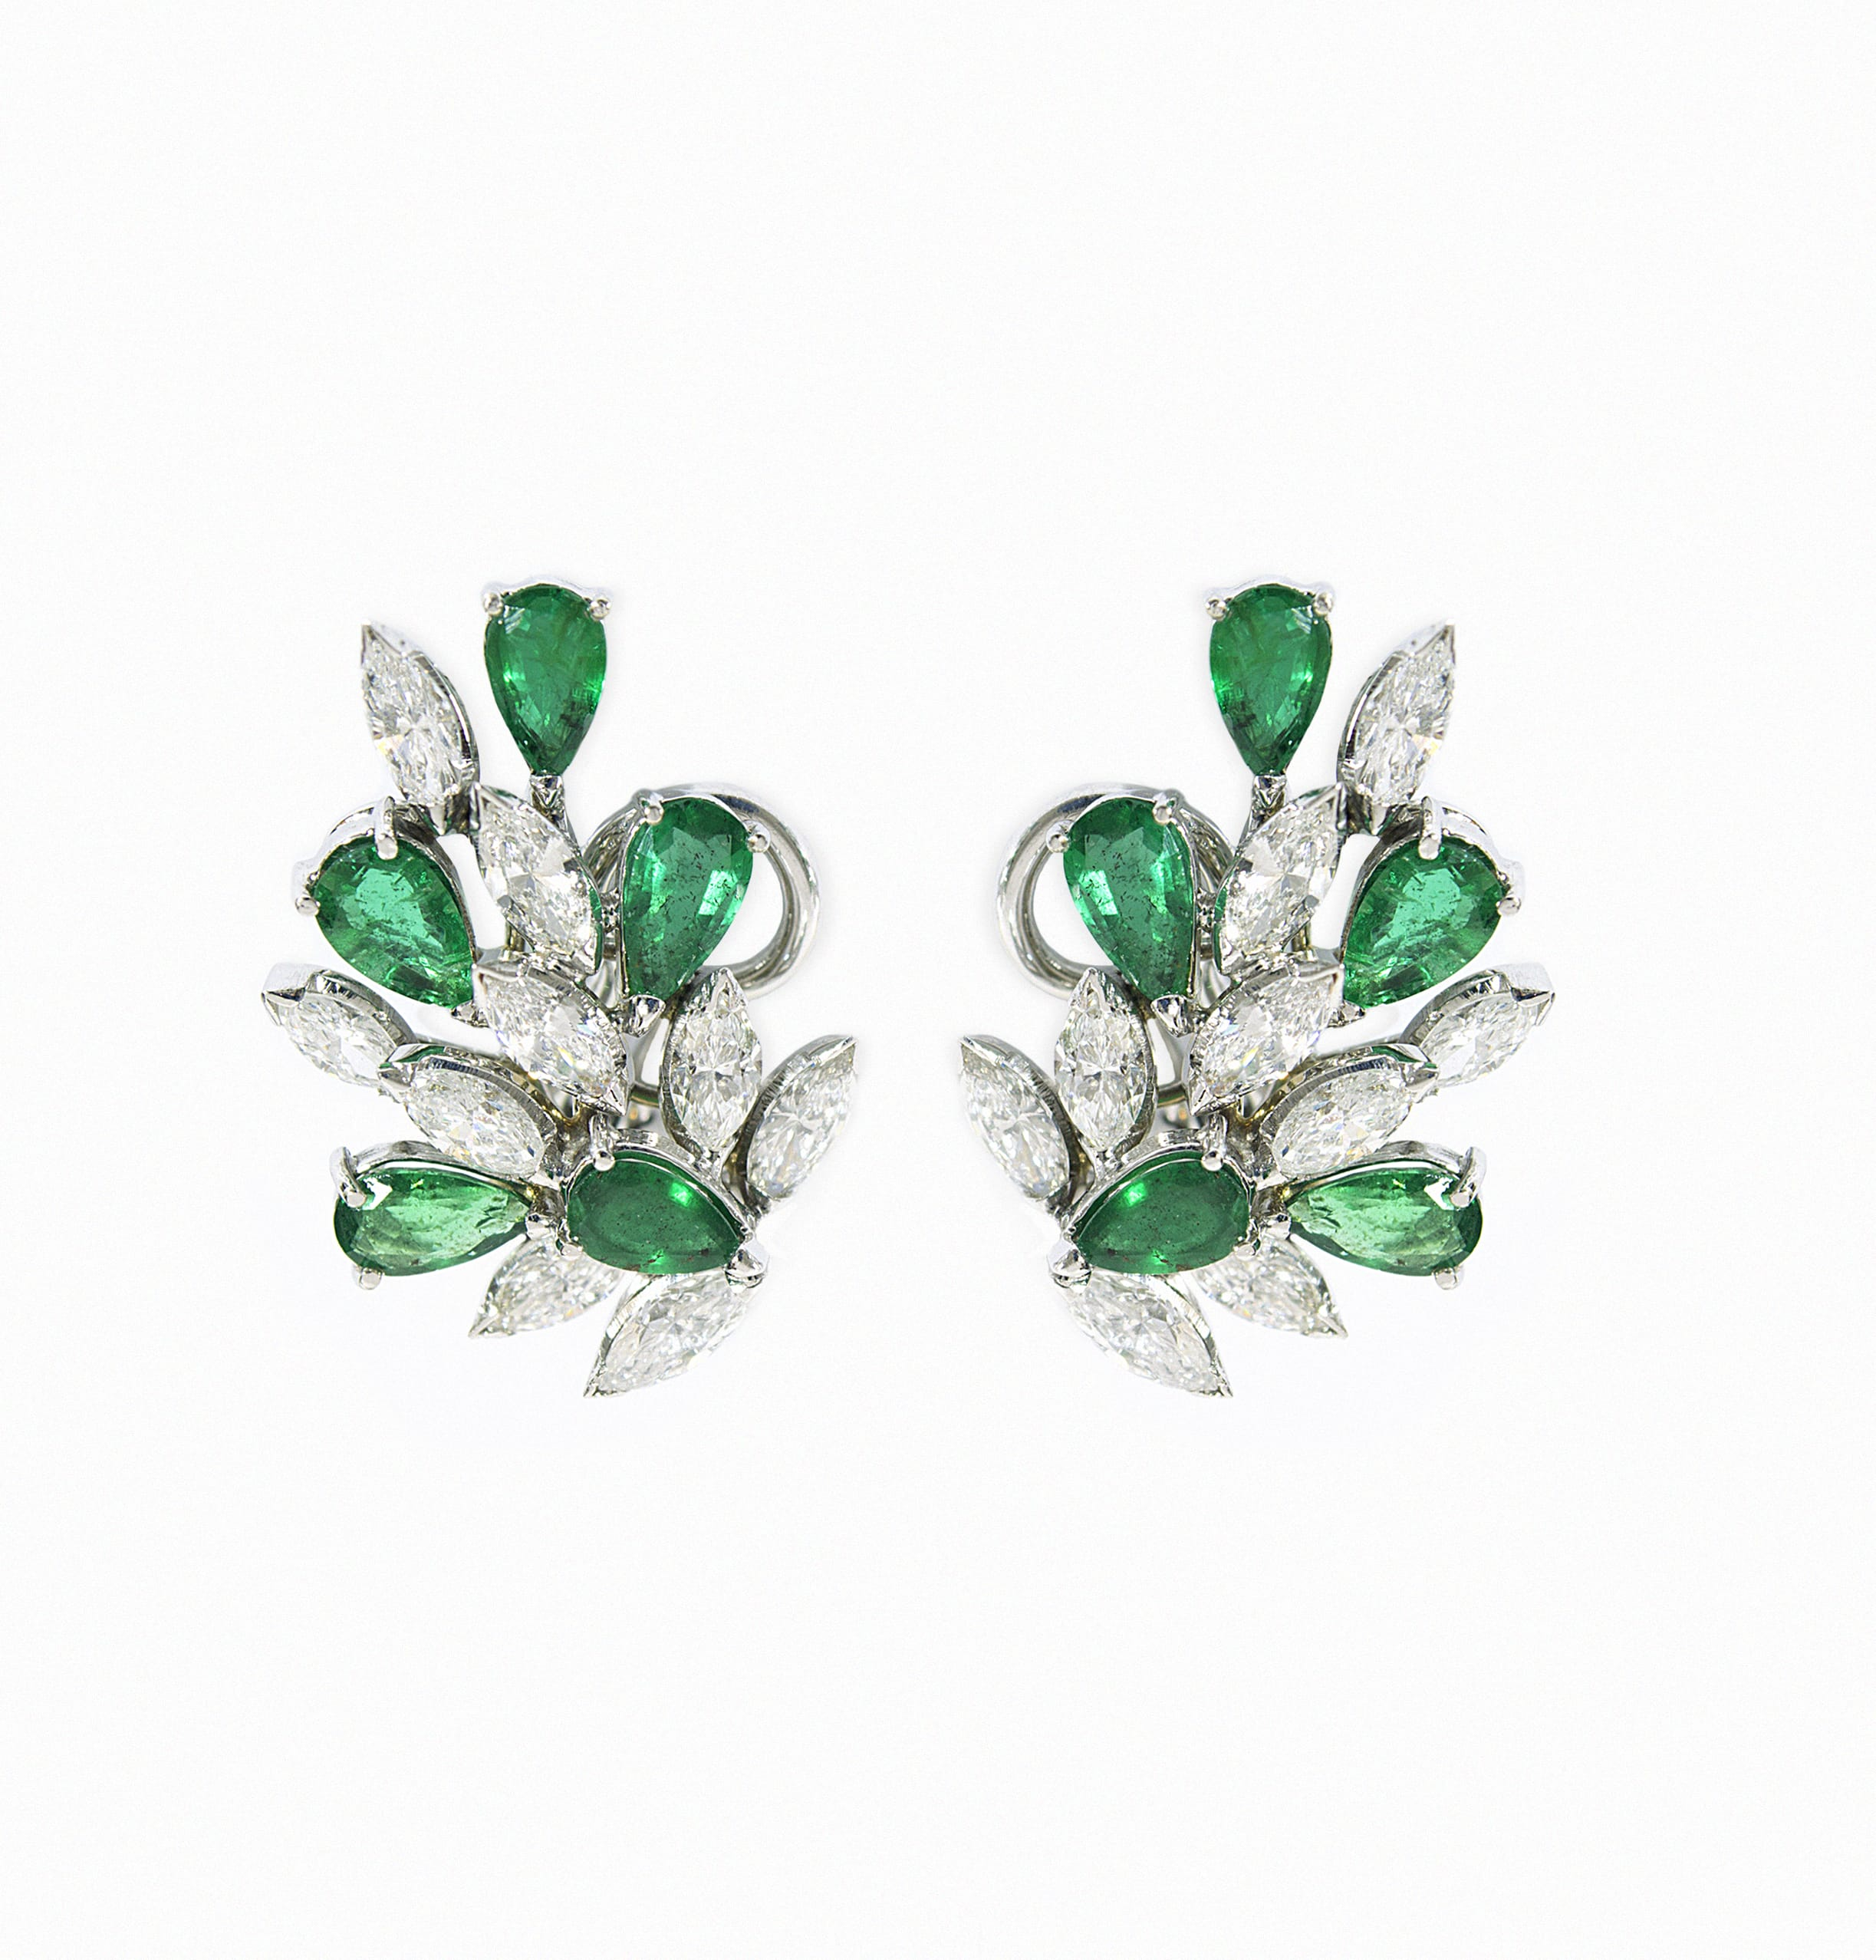 White gold earrings with brilliant cutted diamond and emeralds